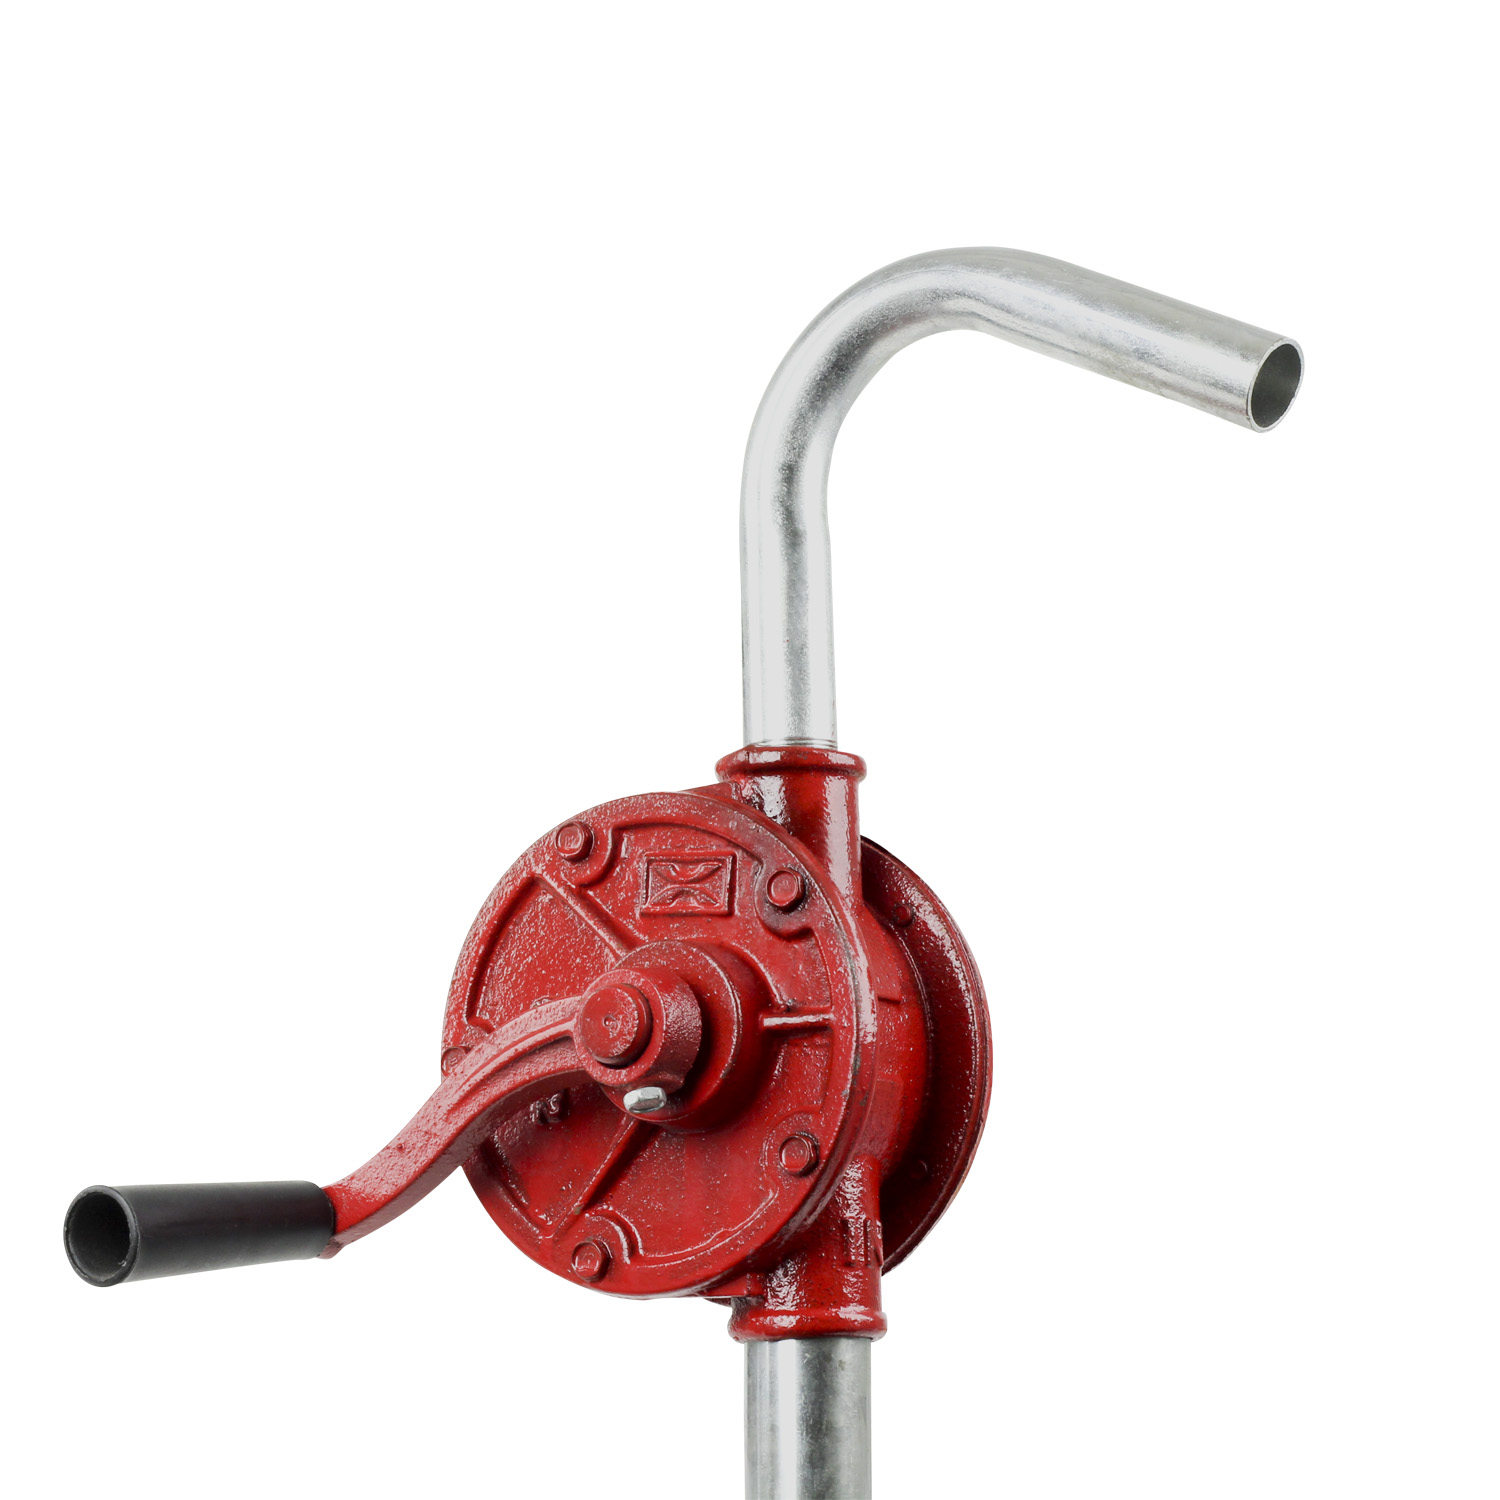 TERAPUMP - TRWS25-CH Rotary Hand Barrel Pump Crank/Handle for TRWS25 Rotary Pump